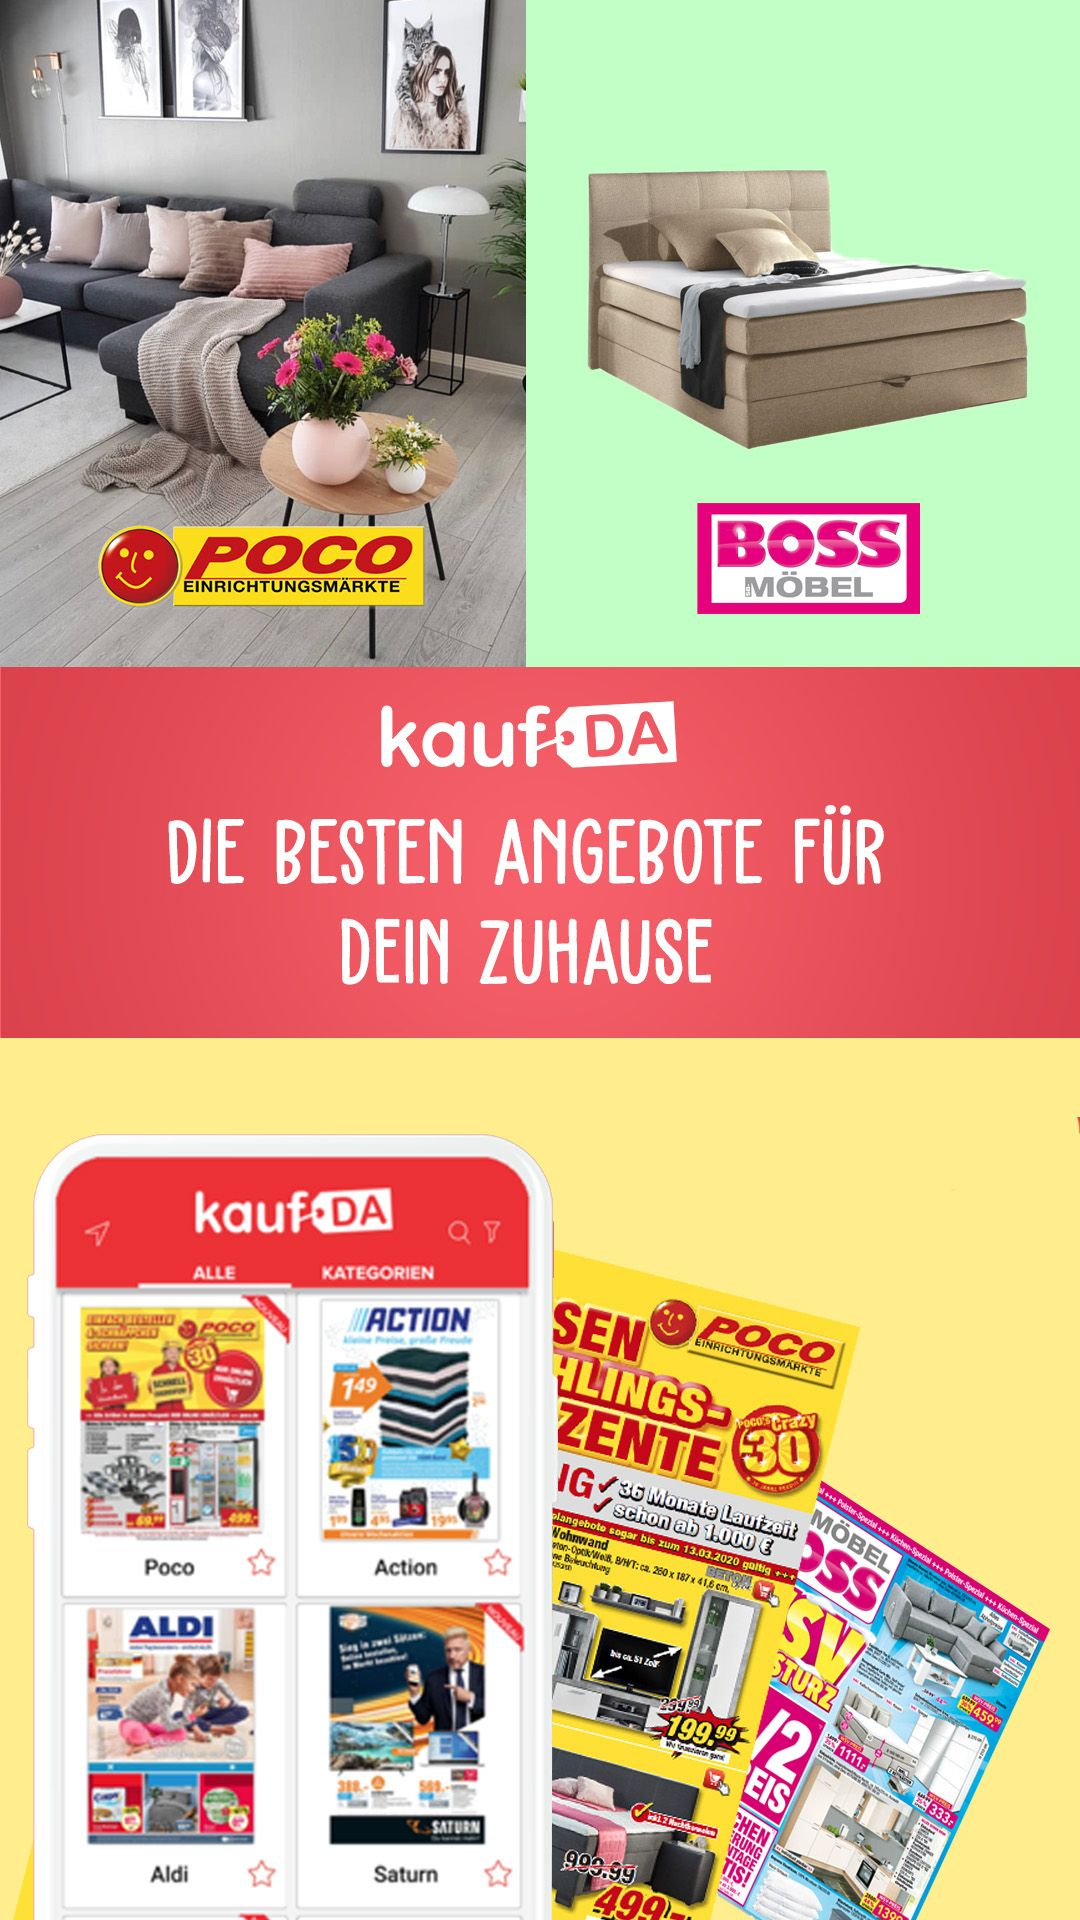 100 Kaufda Angebote Android Ideas In 2021 App Instagram Follower Free Cereal Pops